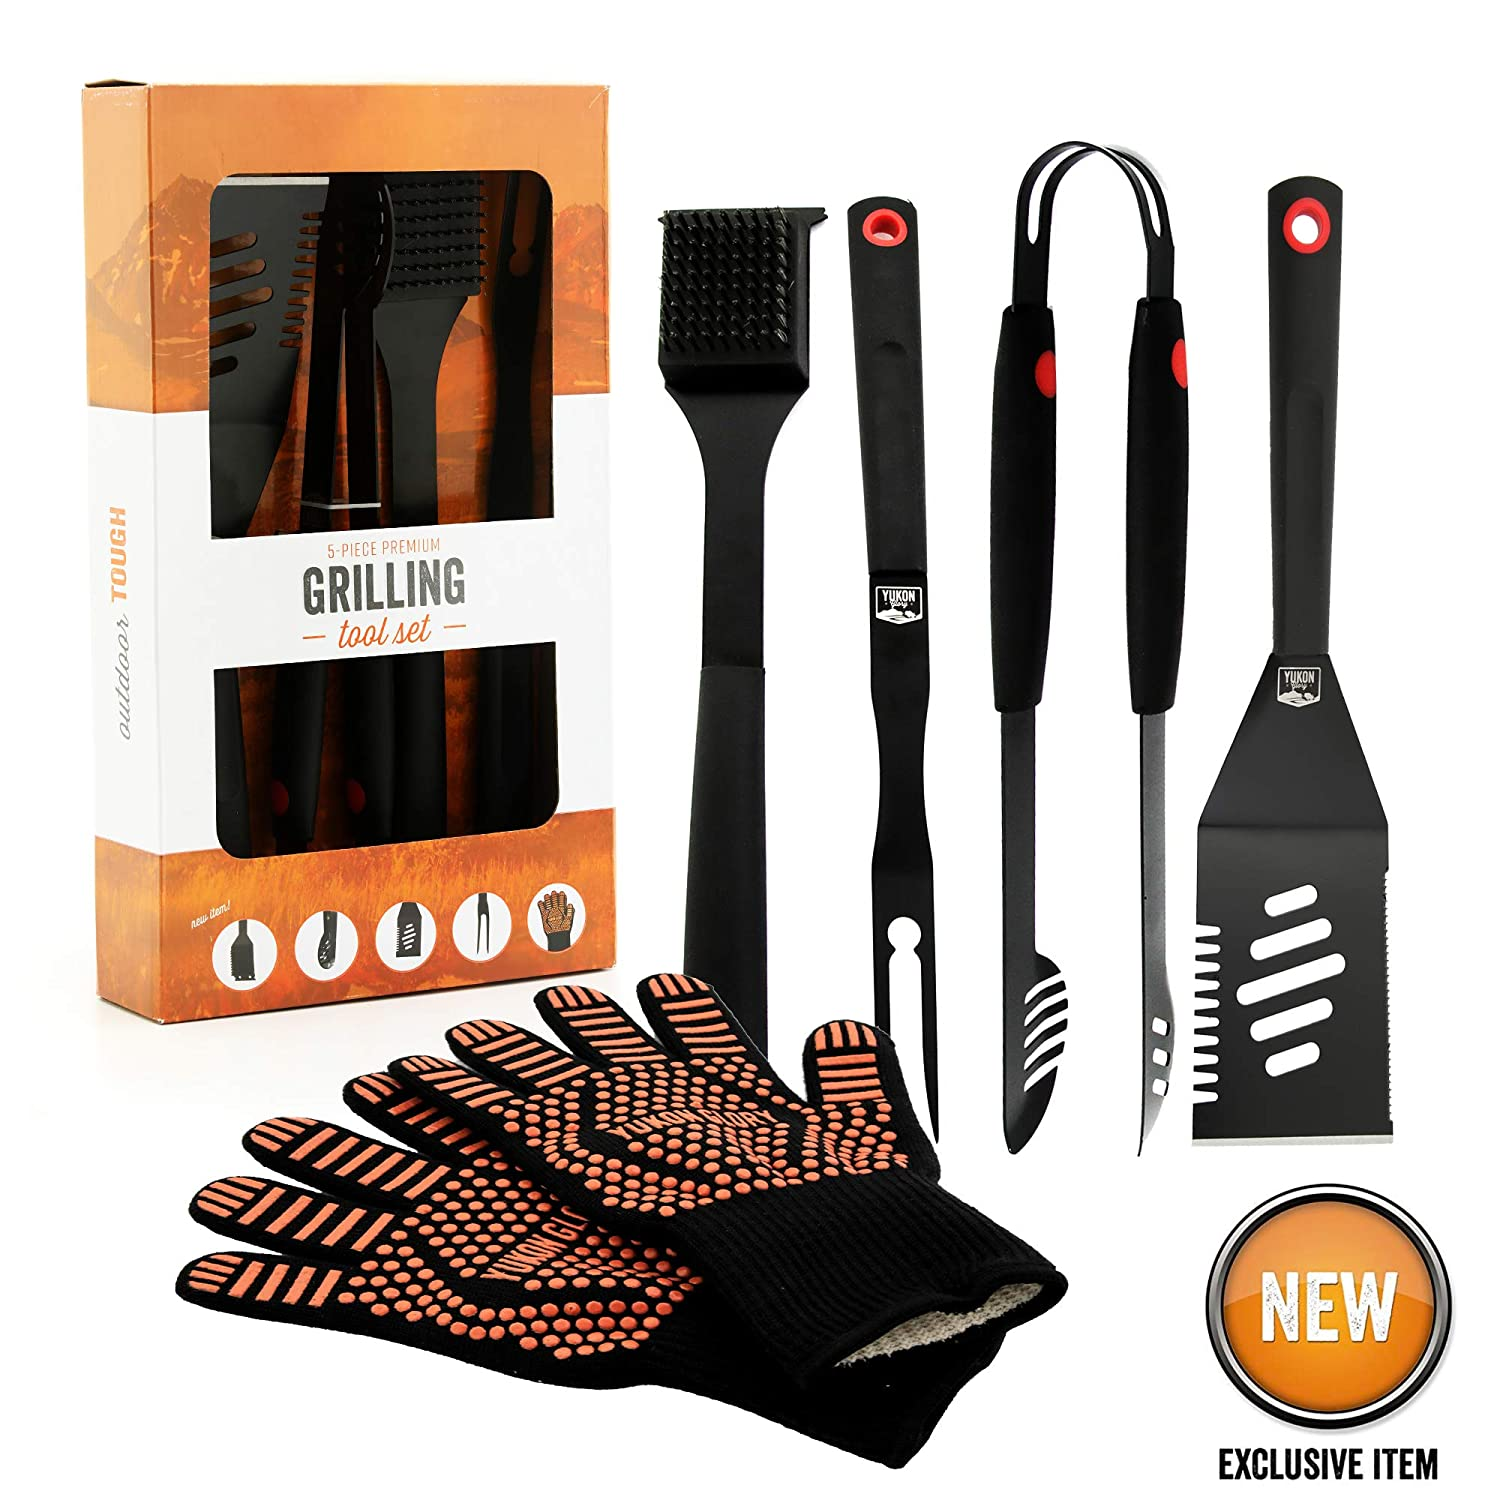 Yukon Glory YG-1455 Grill Tools Premium 5 Piece Grilling Utensils Kit, Durable Steel Tongs, Gloves, 3 in 1 Spatula, Flipper Fork, and Cleaning Brush, Signature Edition Gift Set, Black